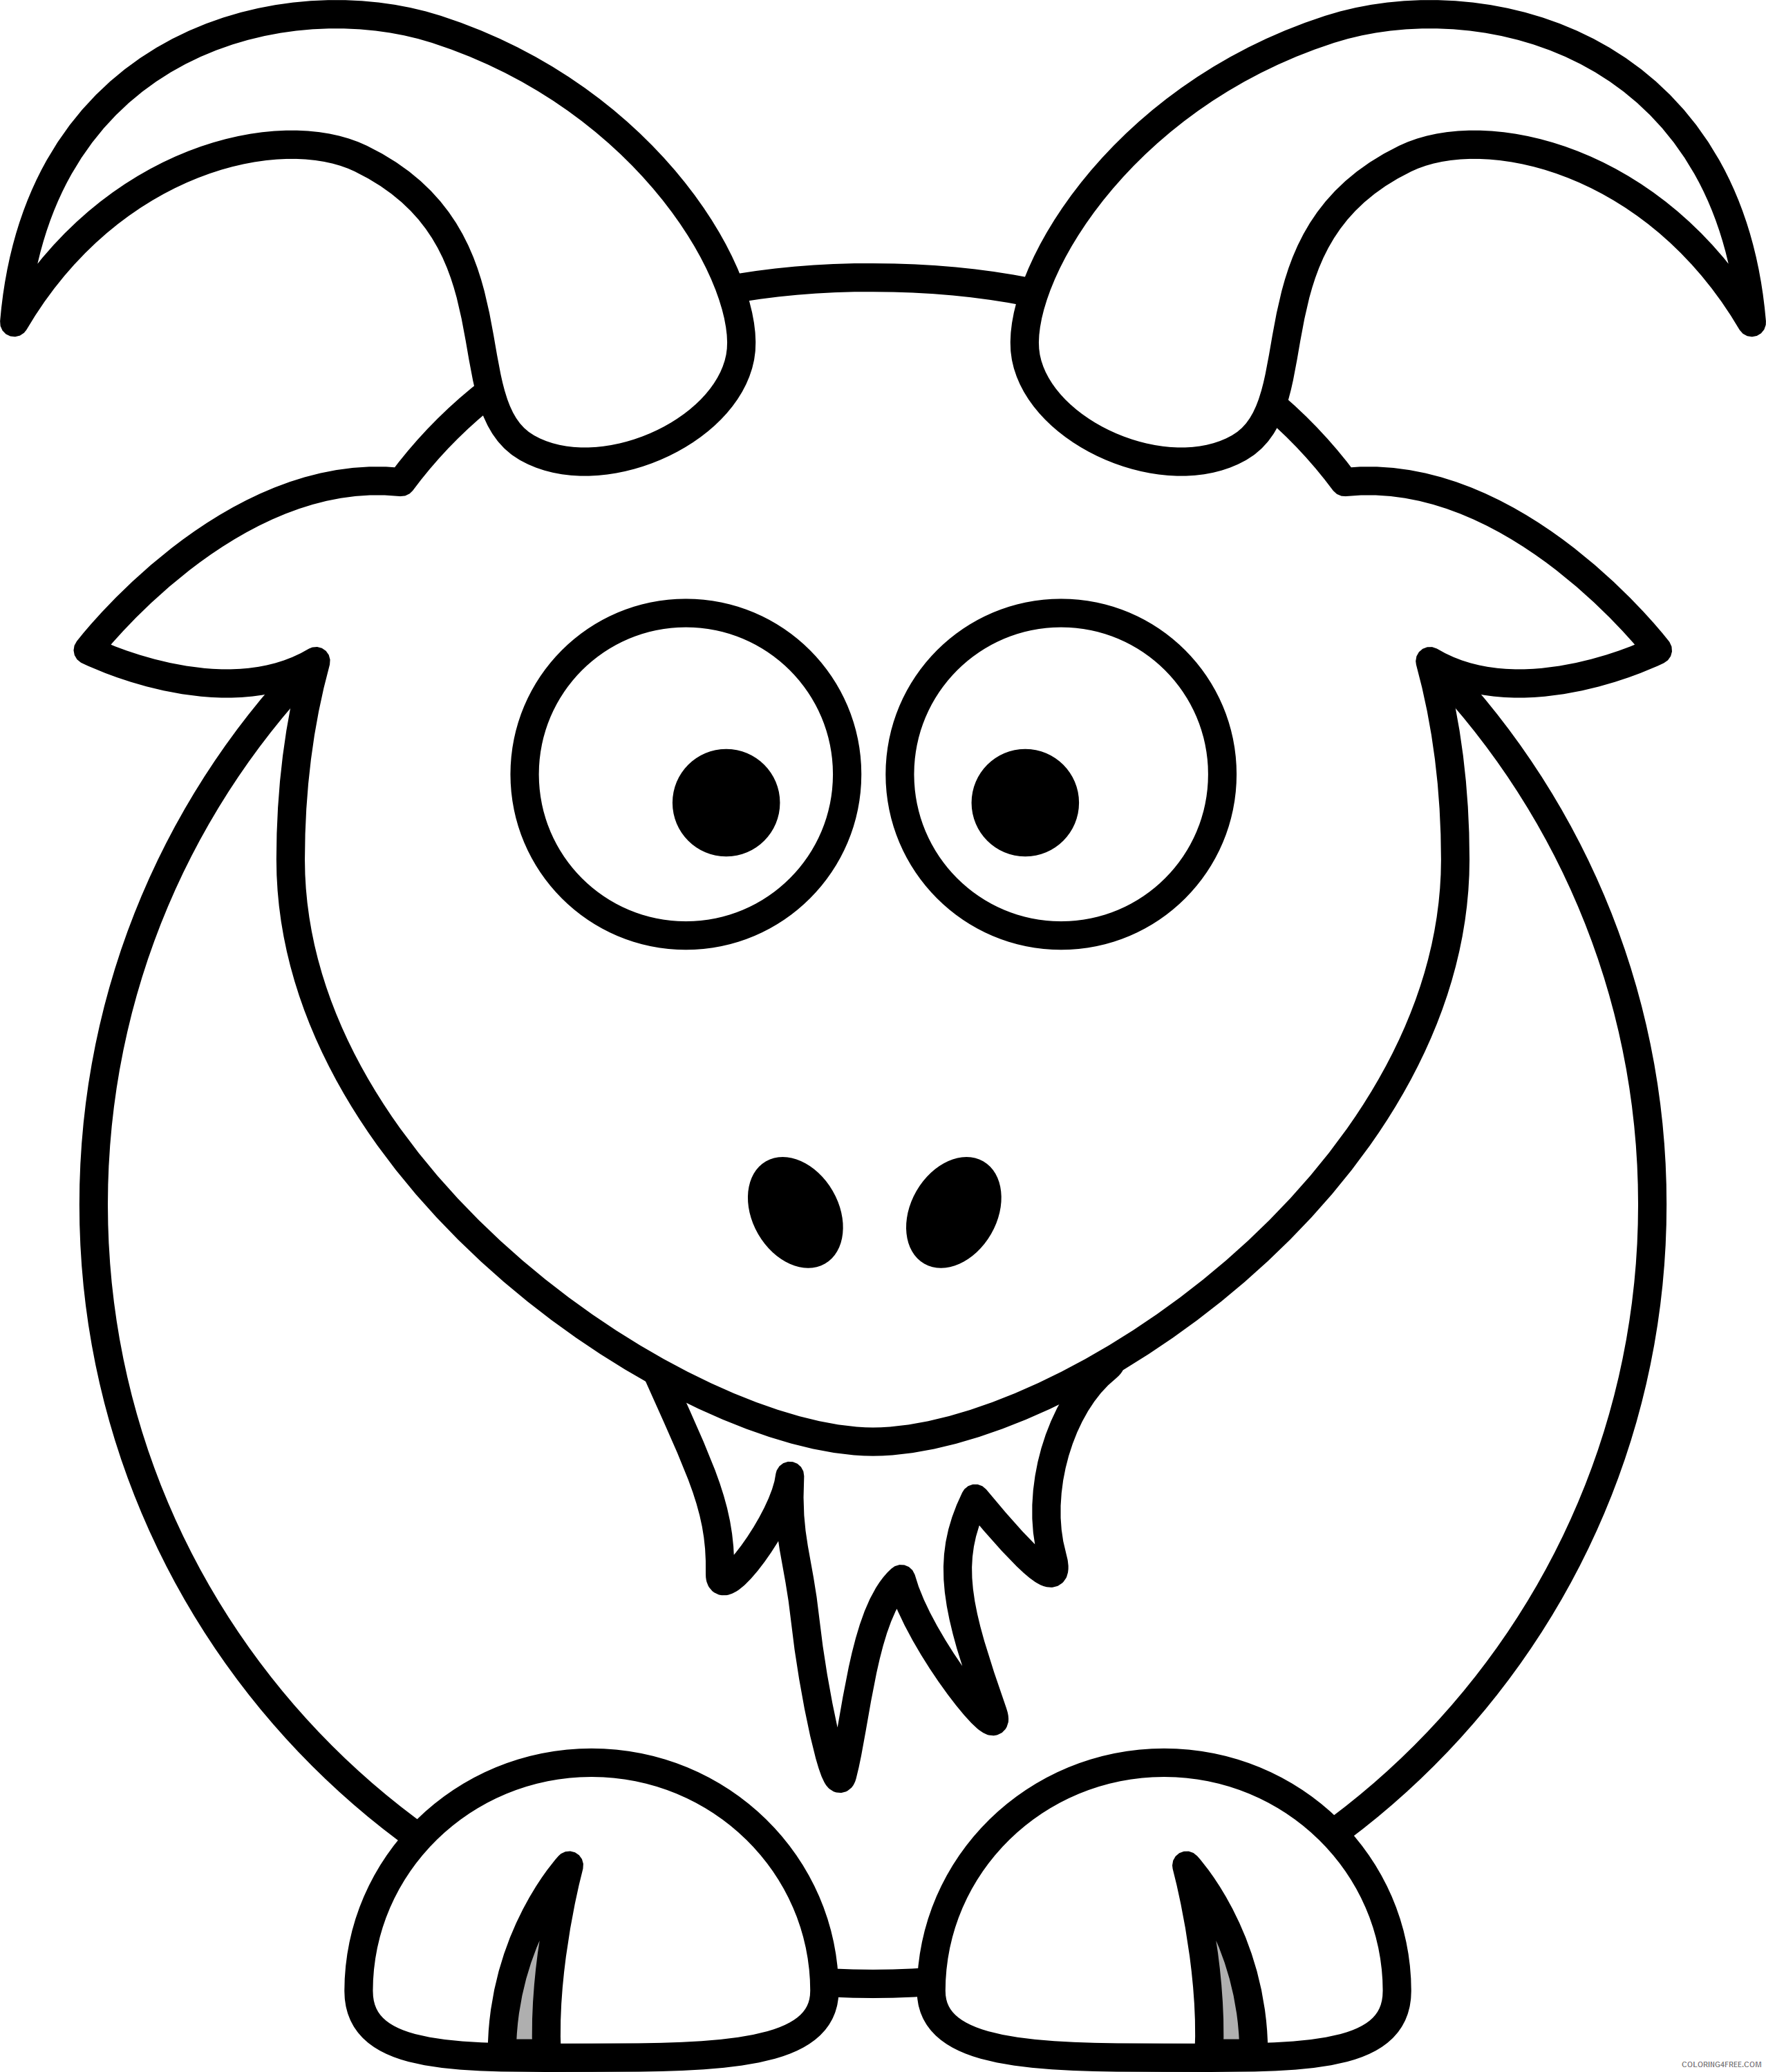 Goat Outline Coloring Pages goat Printable Coloring4free